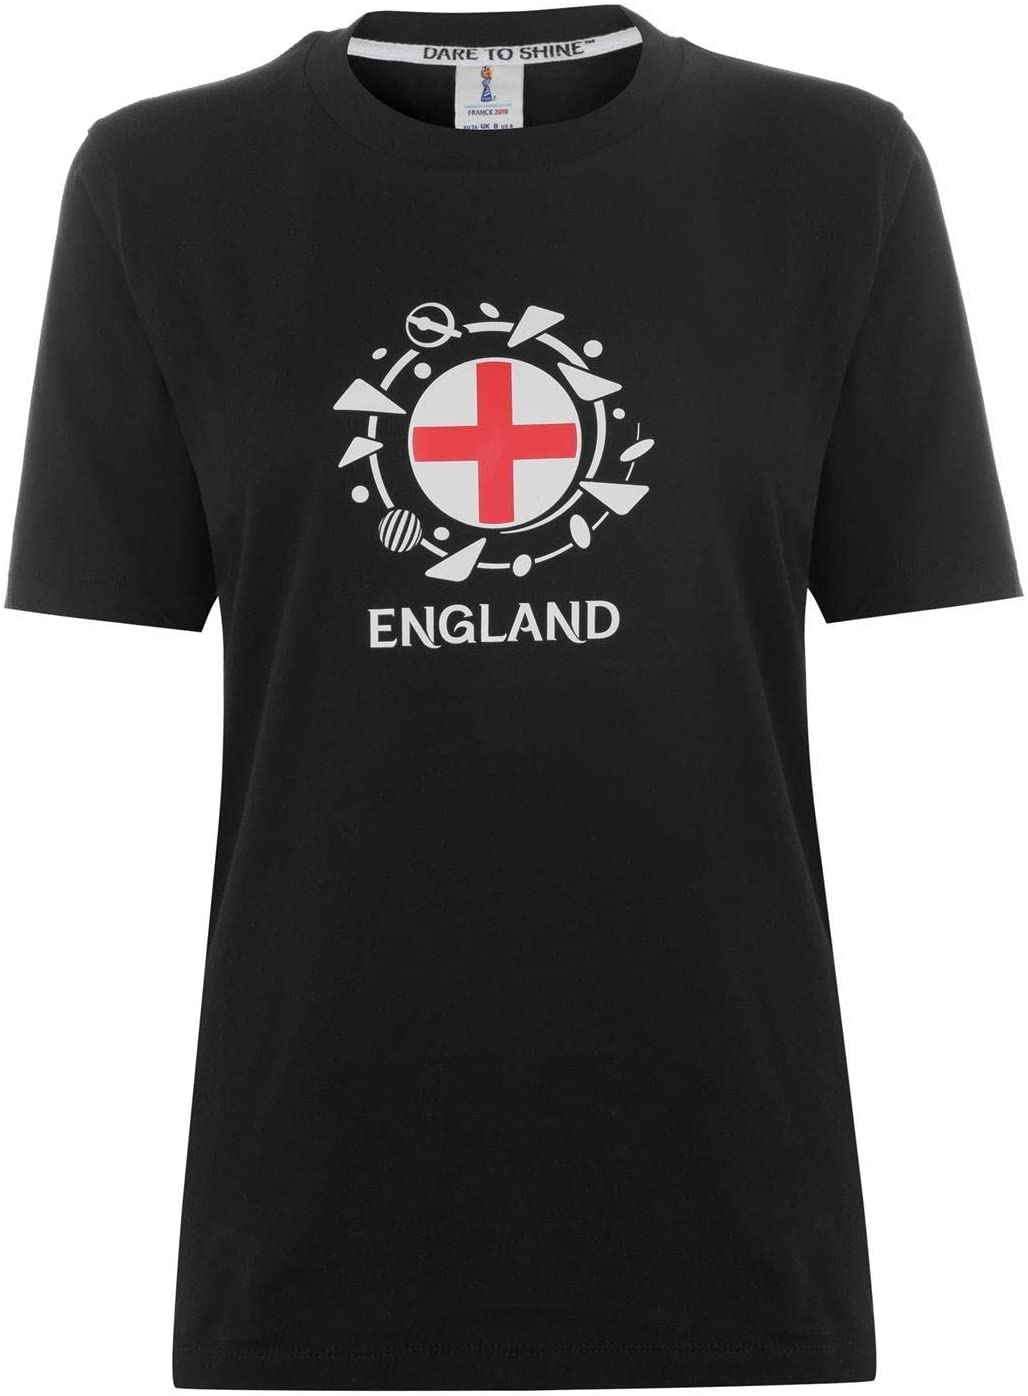 FIFA Womens World Cup 2019 England Graphic T-Shirt Womens Black Football Soccer